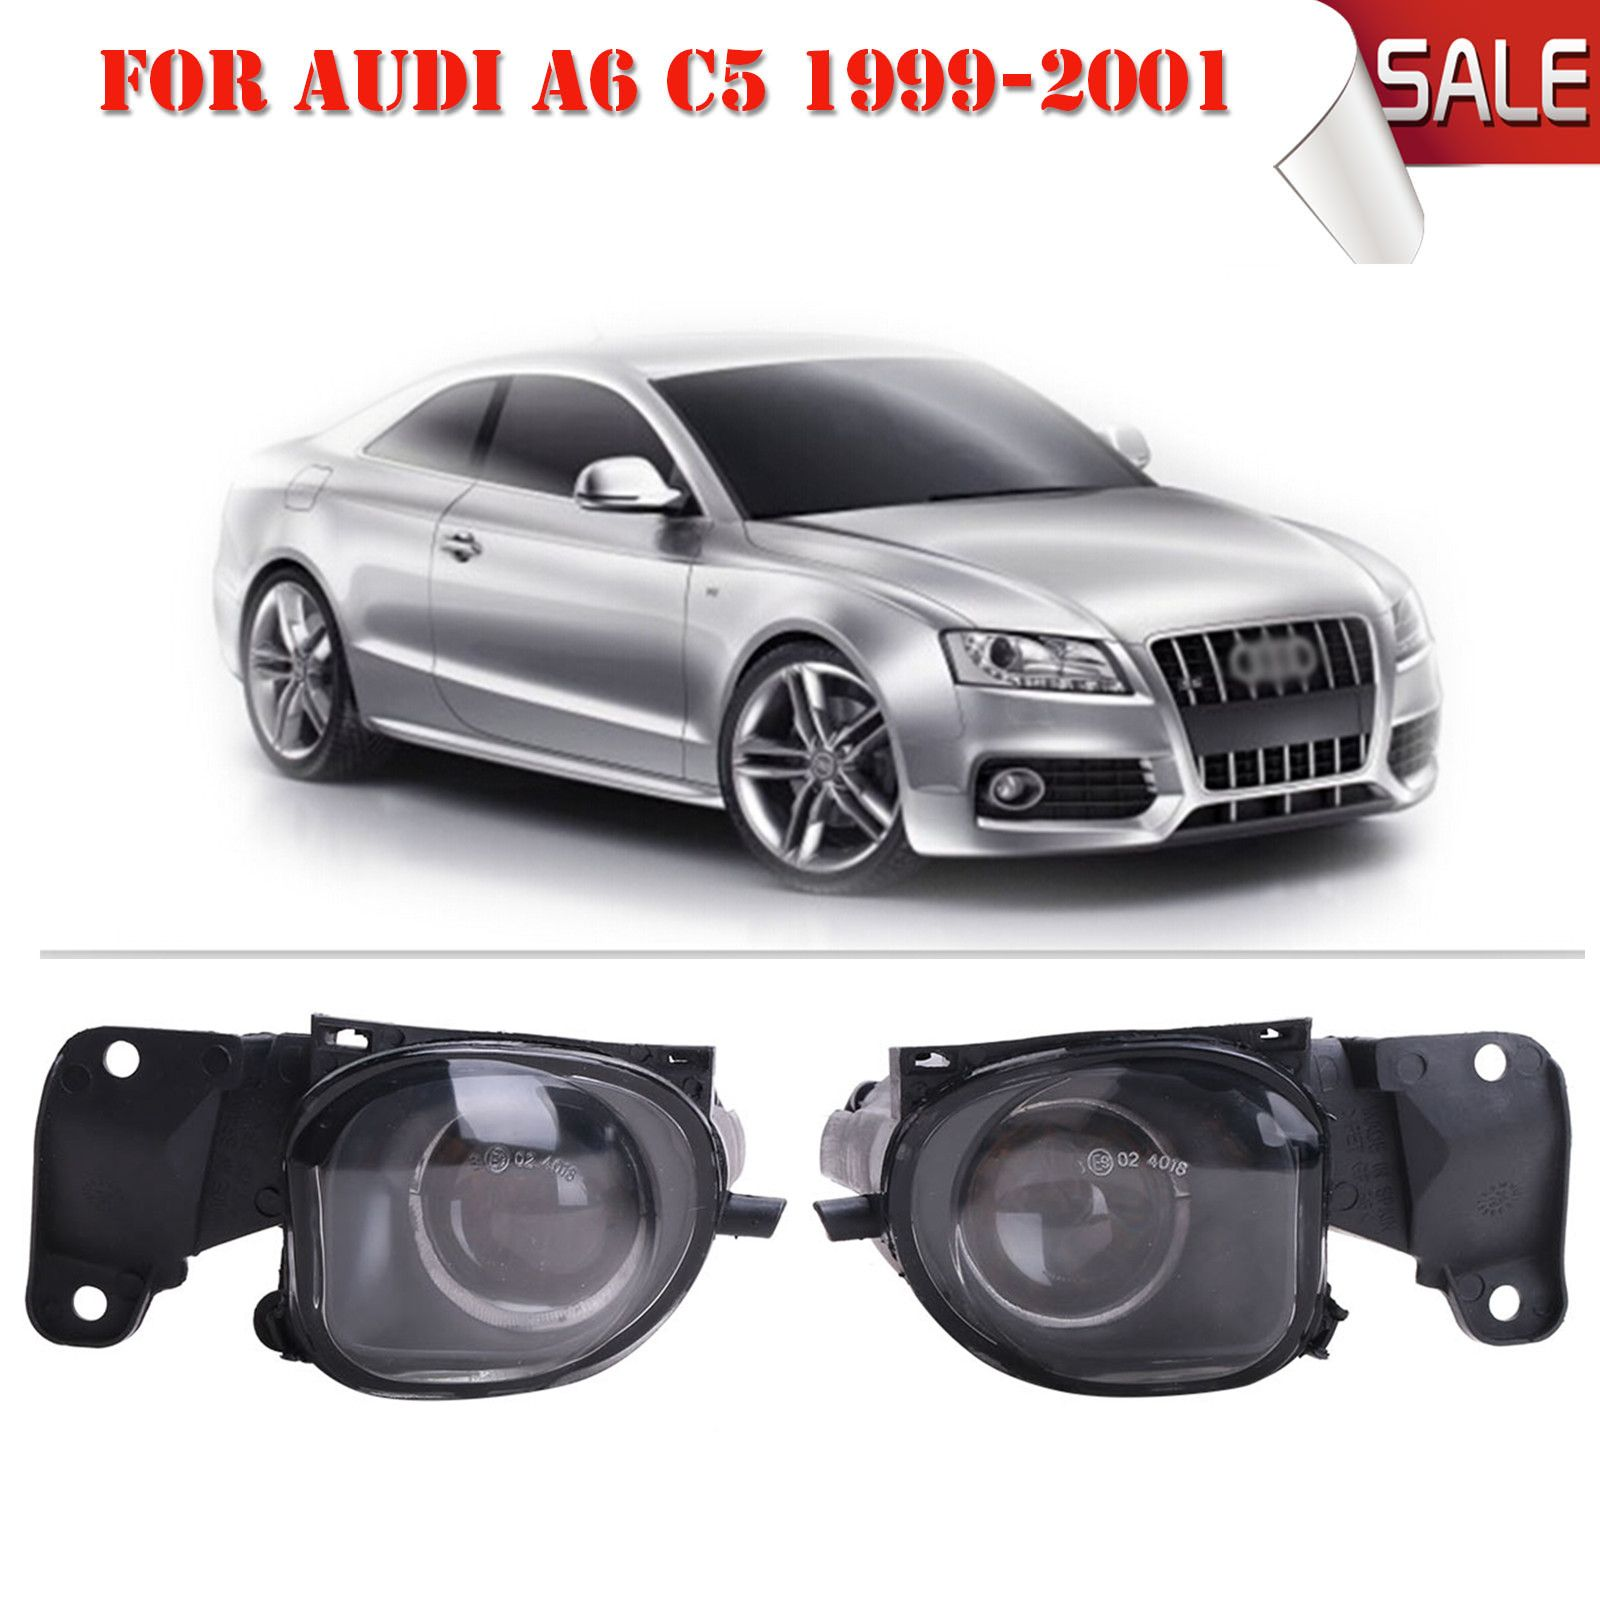 oem 4b3941699a 2pcs for audi a6 s6 c5 4 2l 1999 2001 front bumper fog lights fog lamps with bulb h3 c 5 [ 1600 x 1600 Pixel ]